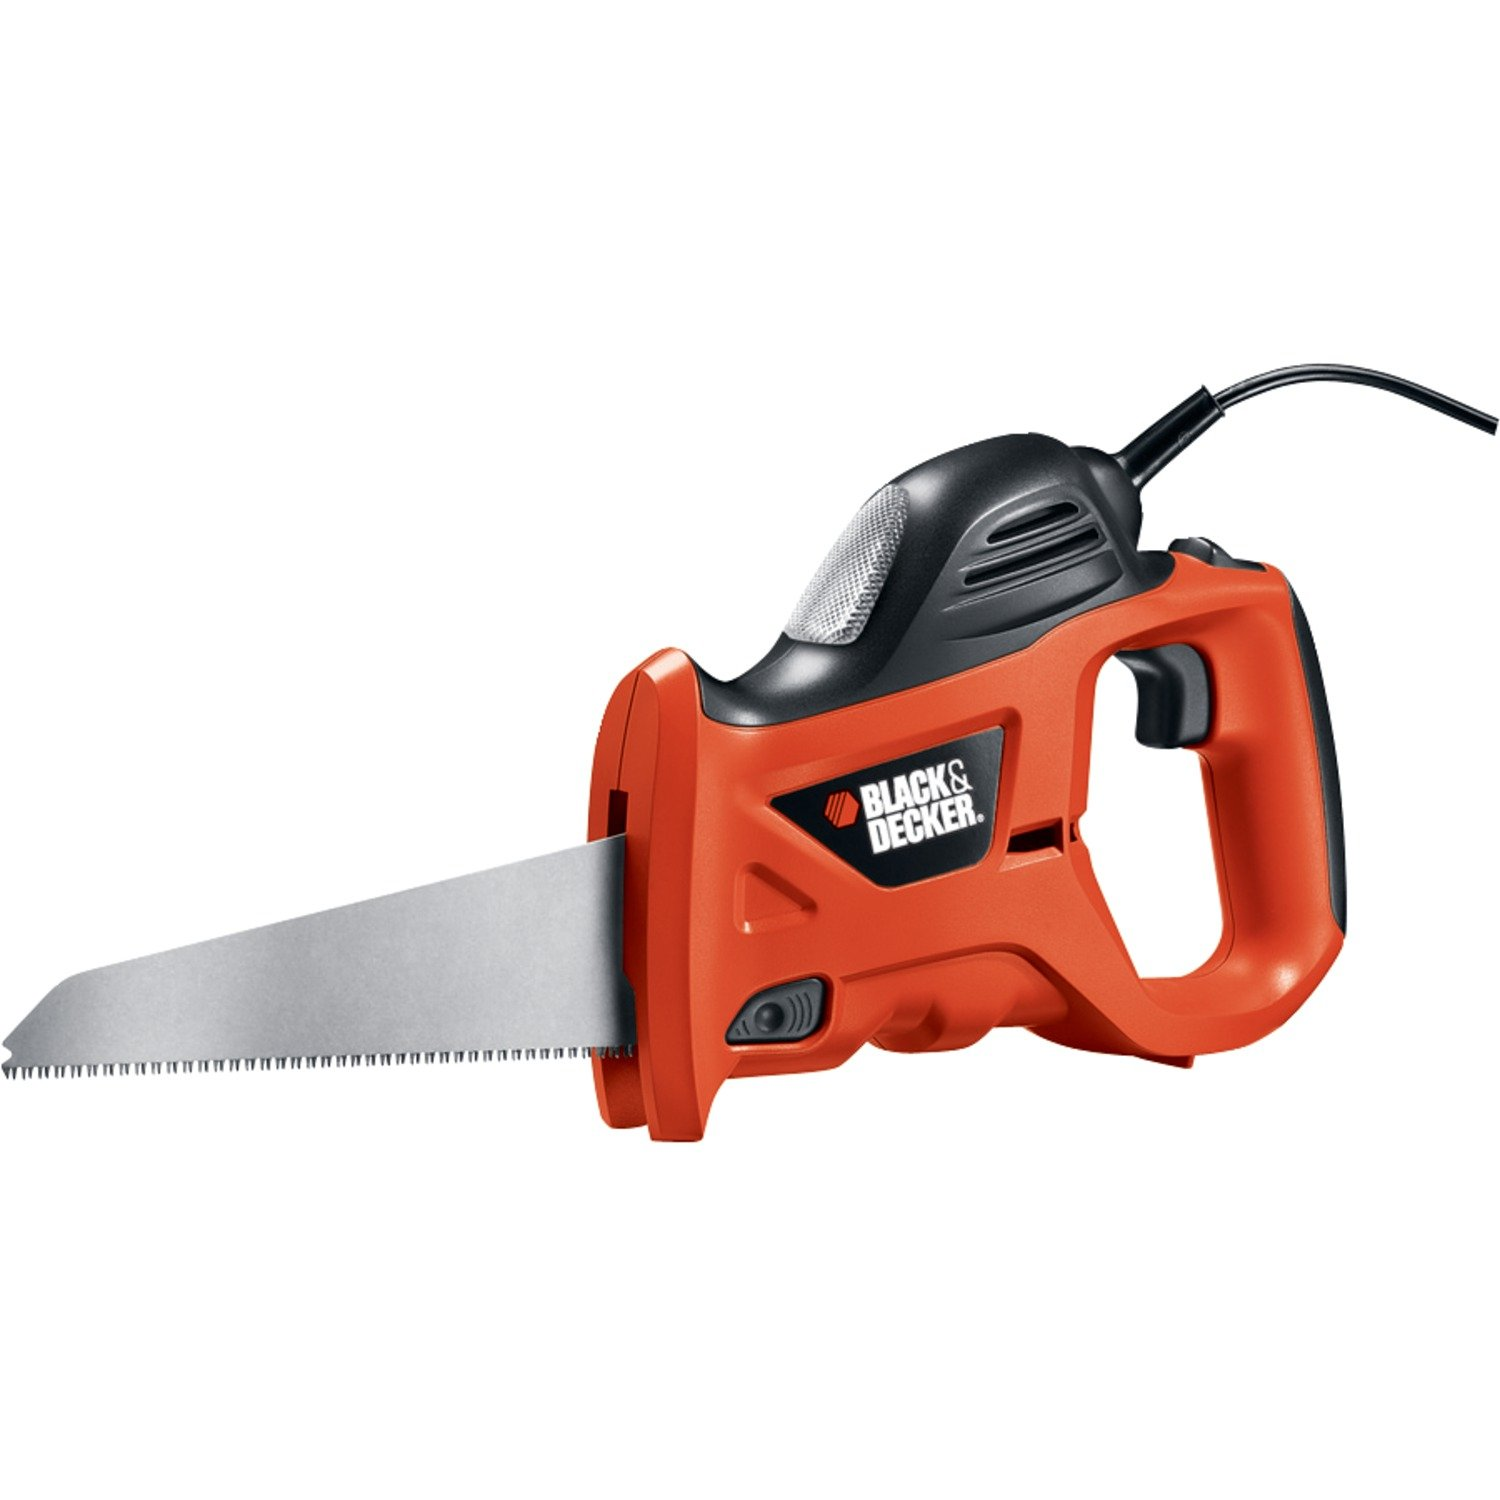 Blackdecker phs550b 34 amp powered handsaw with storage bag blackdecker phs550b 34 amp powered handsaw with storage bag power jig saws amazon greentooth Image collections